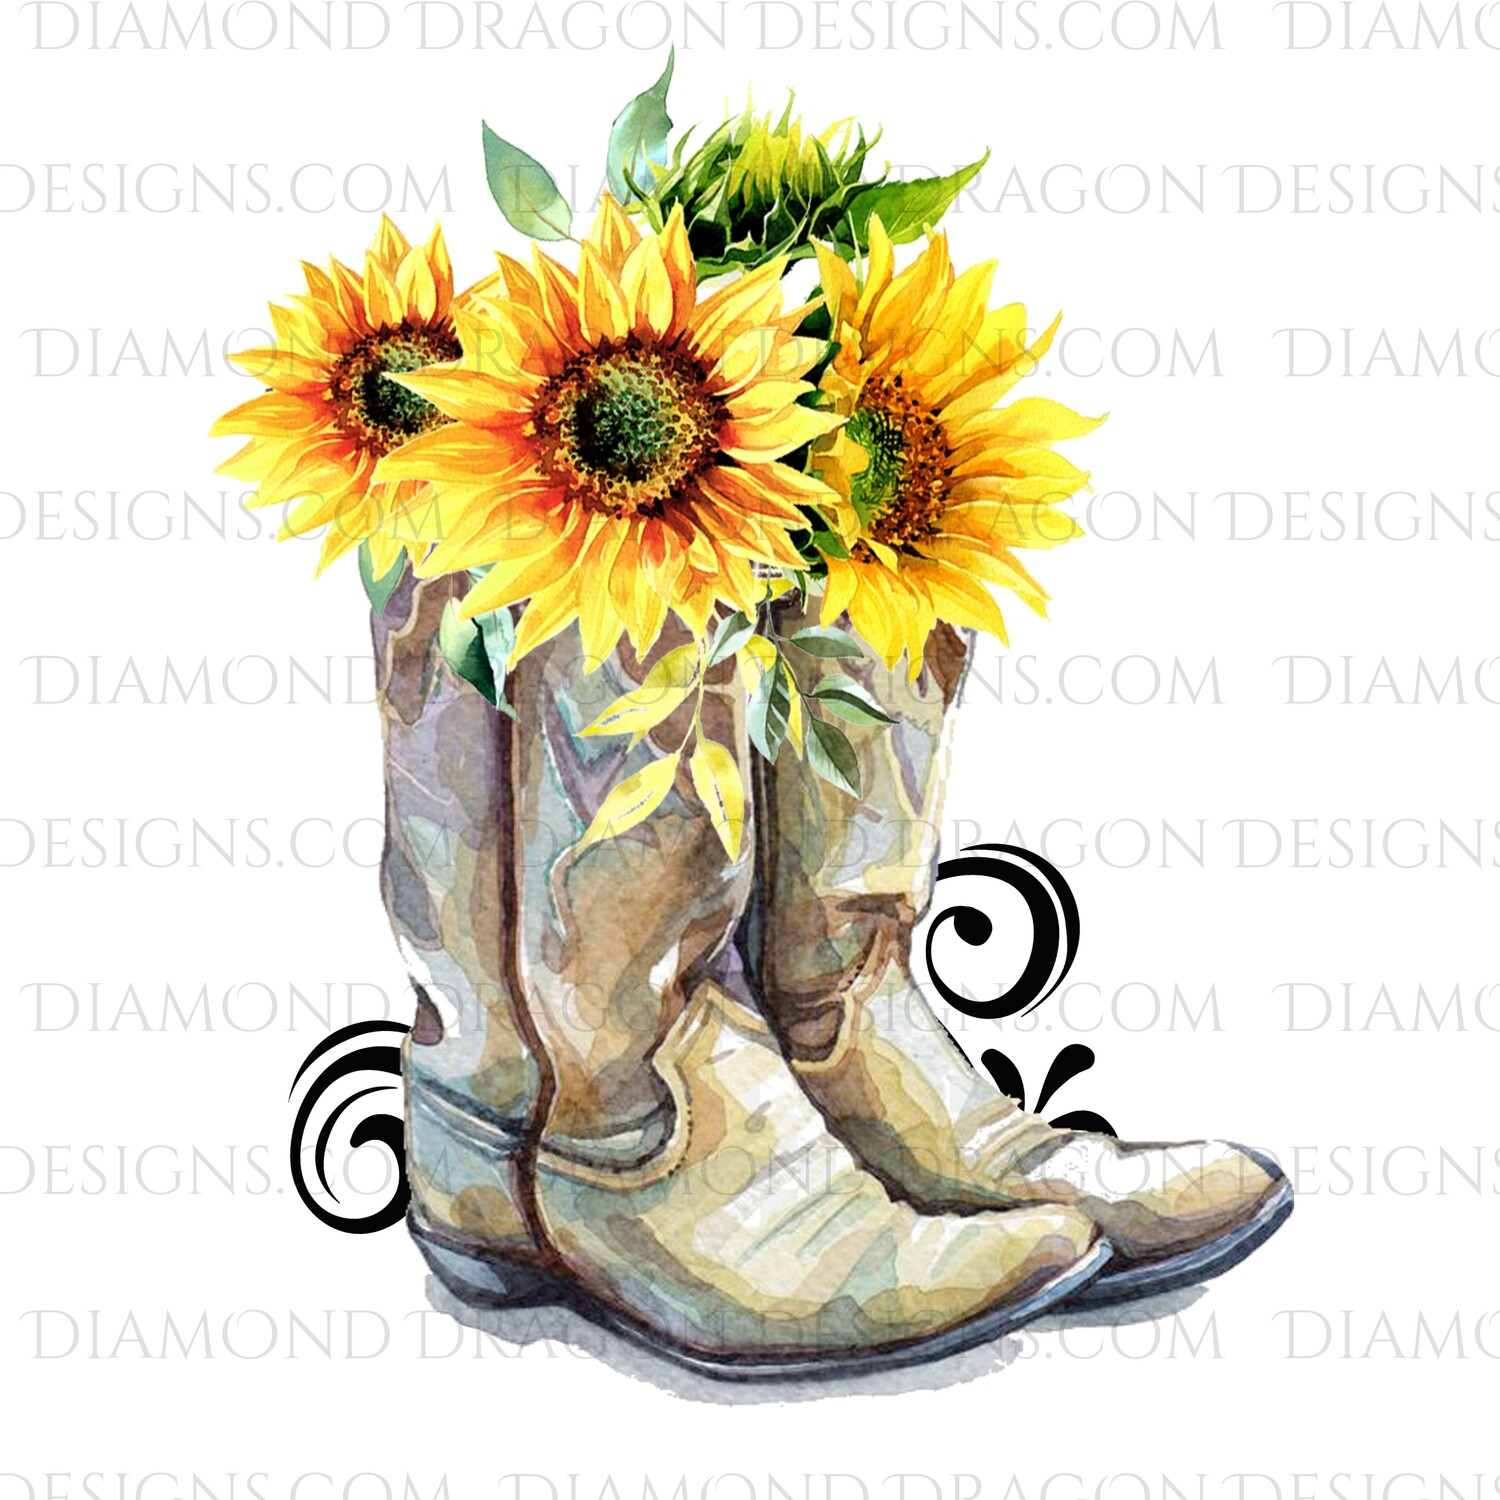 Western - Cowboy Boots, Sunflower Floral, Digital Image